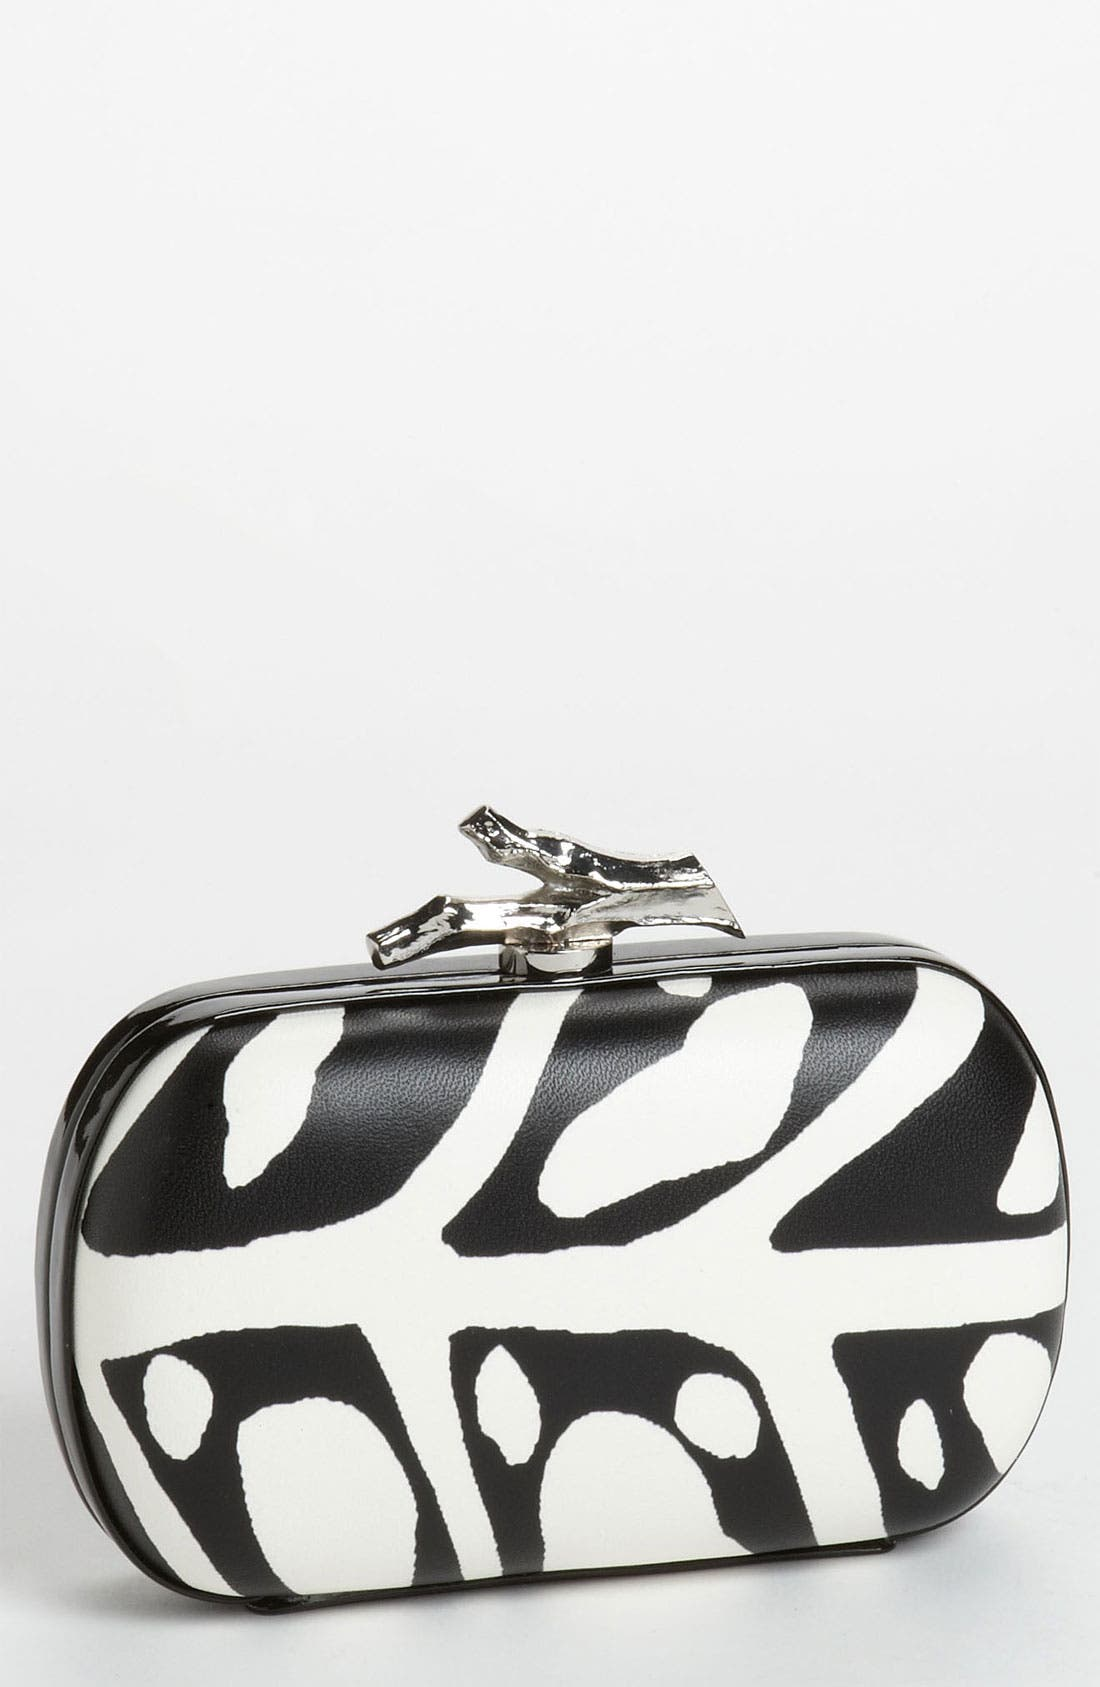 Alternate Image 1 Selected - Diane von Furstenberg 'Lytton' Printed Leather Clutch